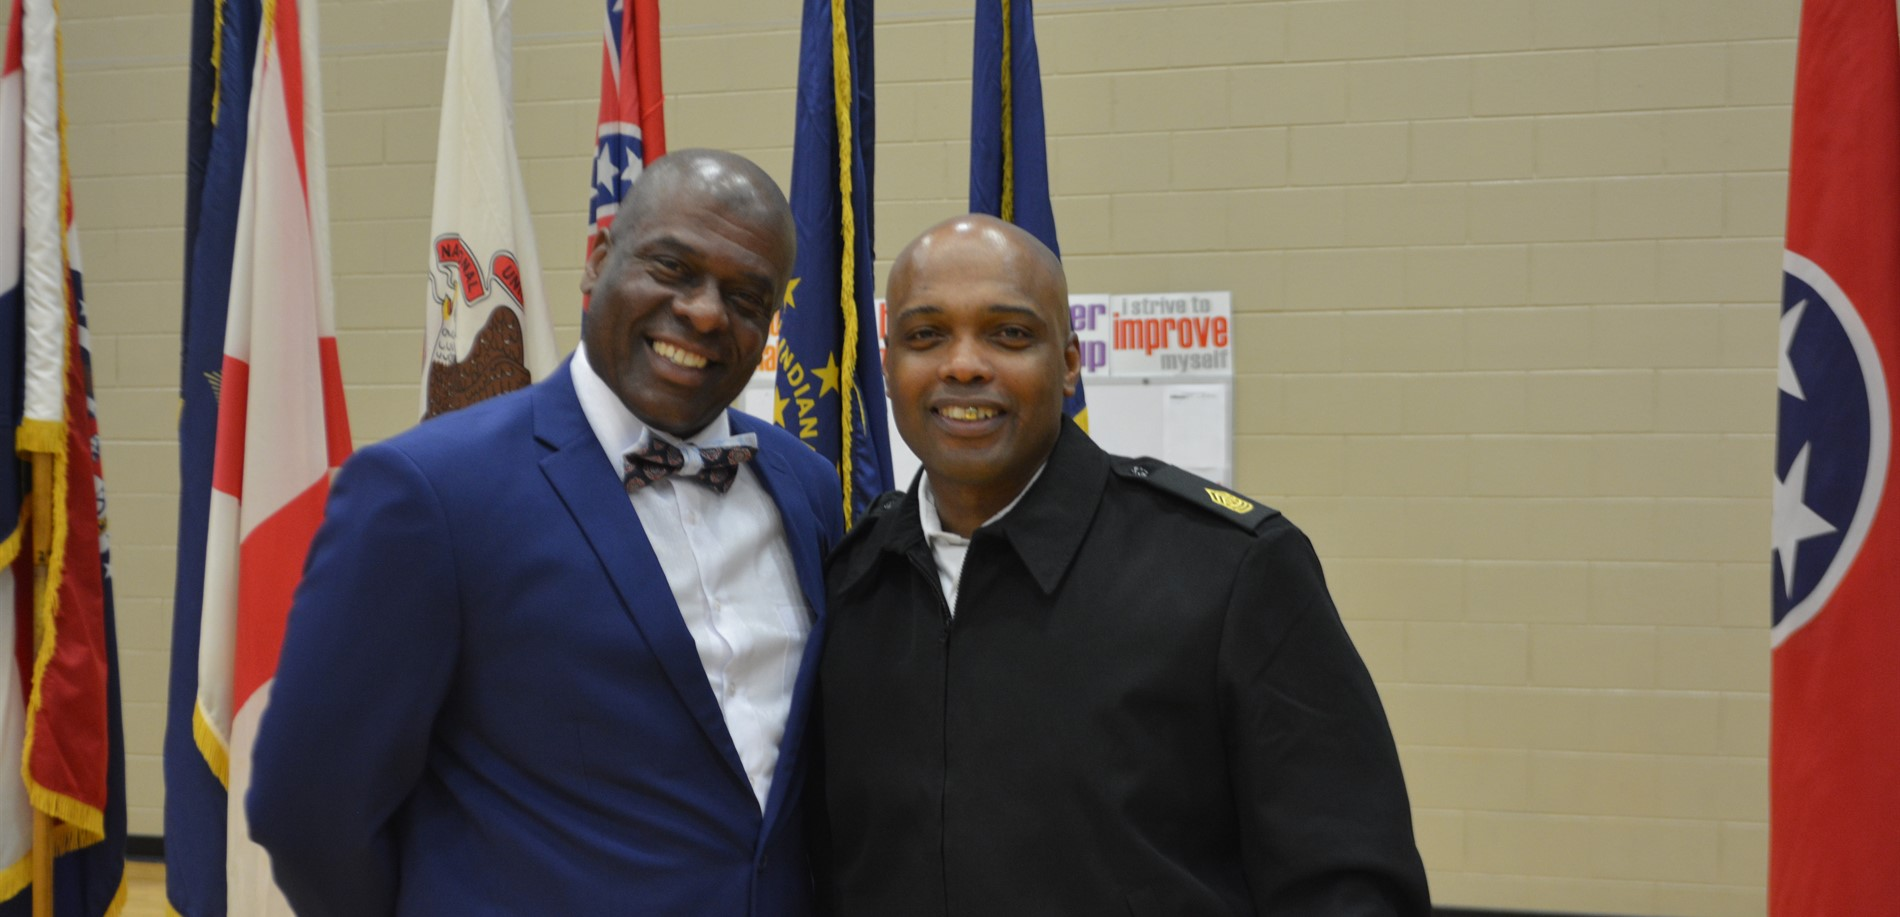 Mr. Gibbs and guest speaker Sergeant Major Garrick Griffin